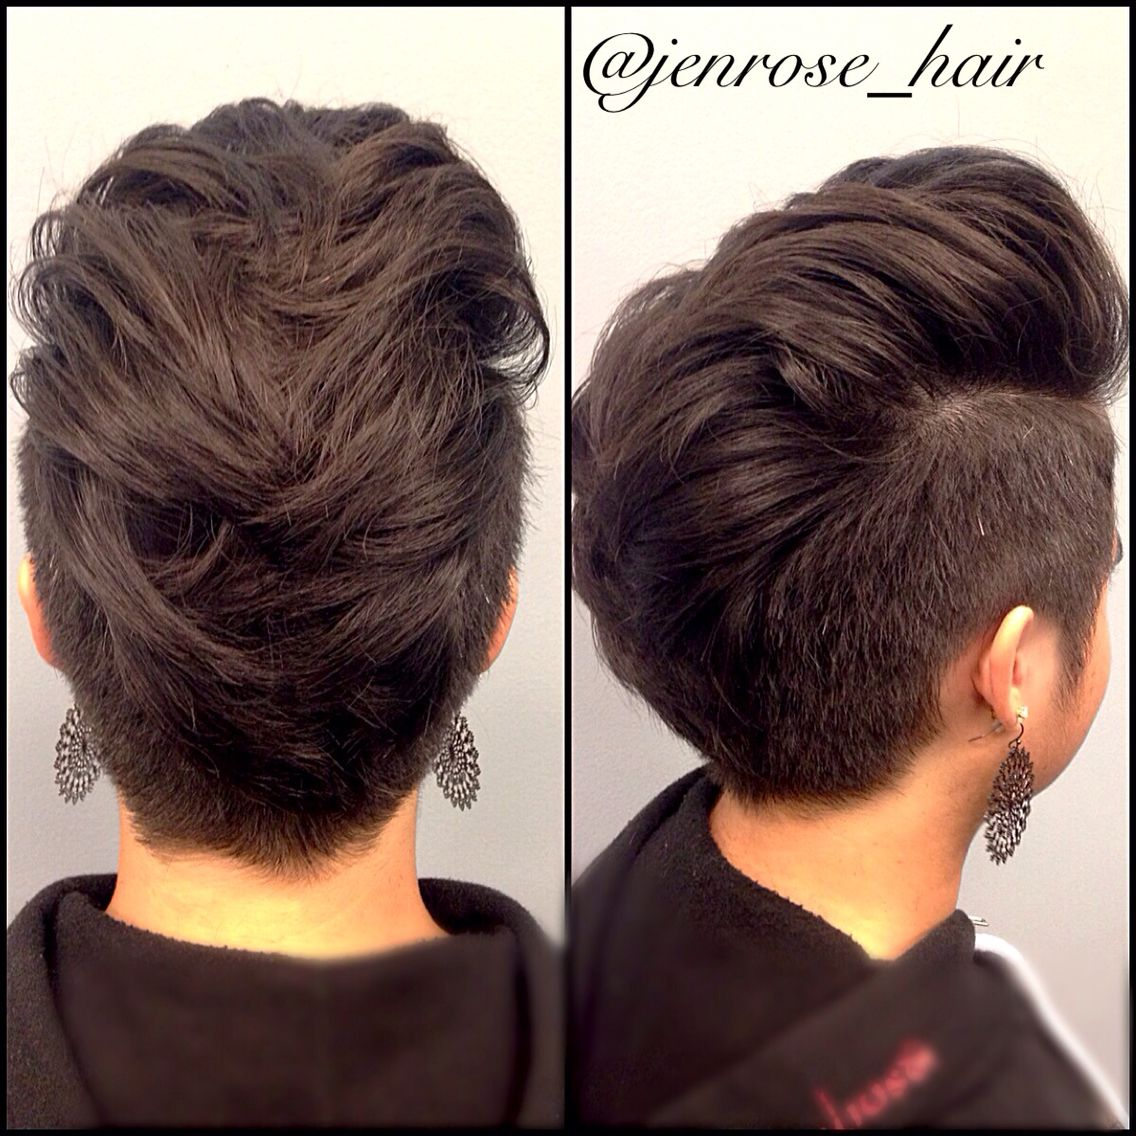 women's faux hawk with shaved sides. shorts women's hair cut